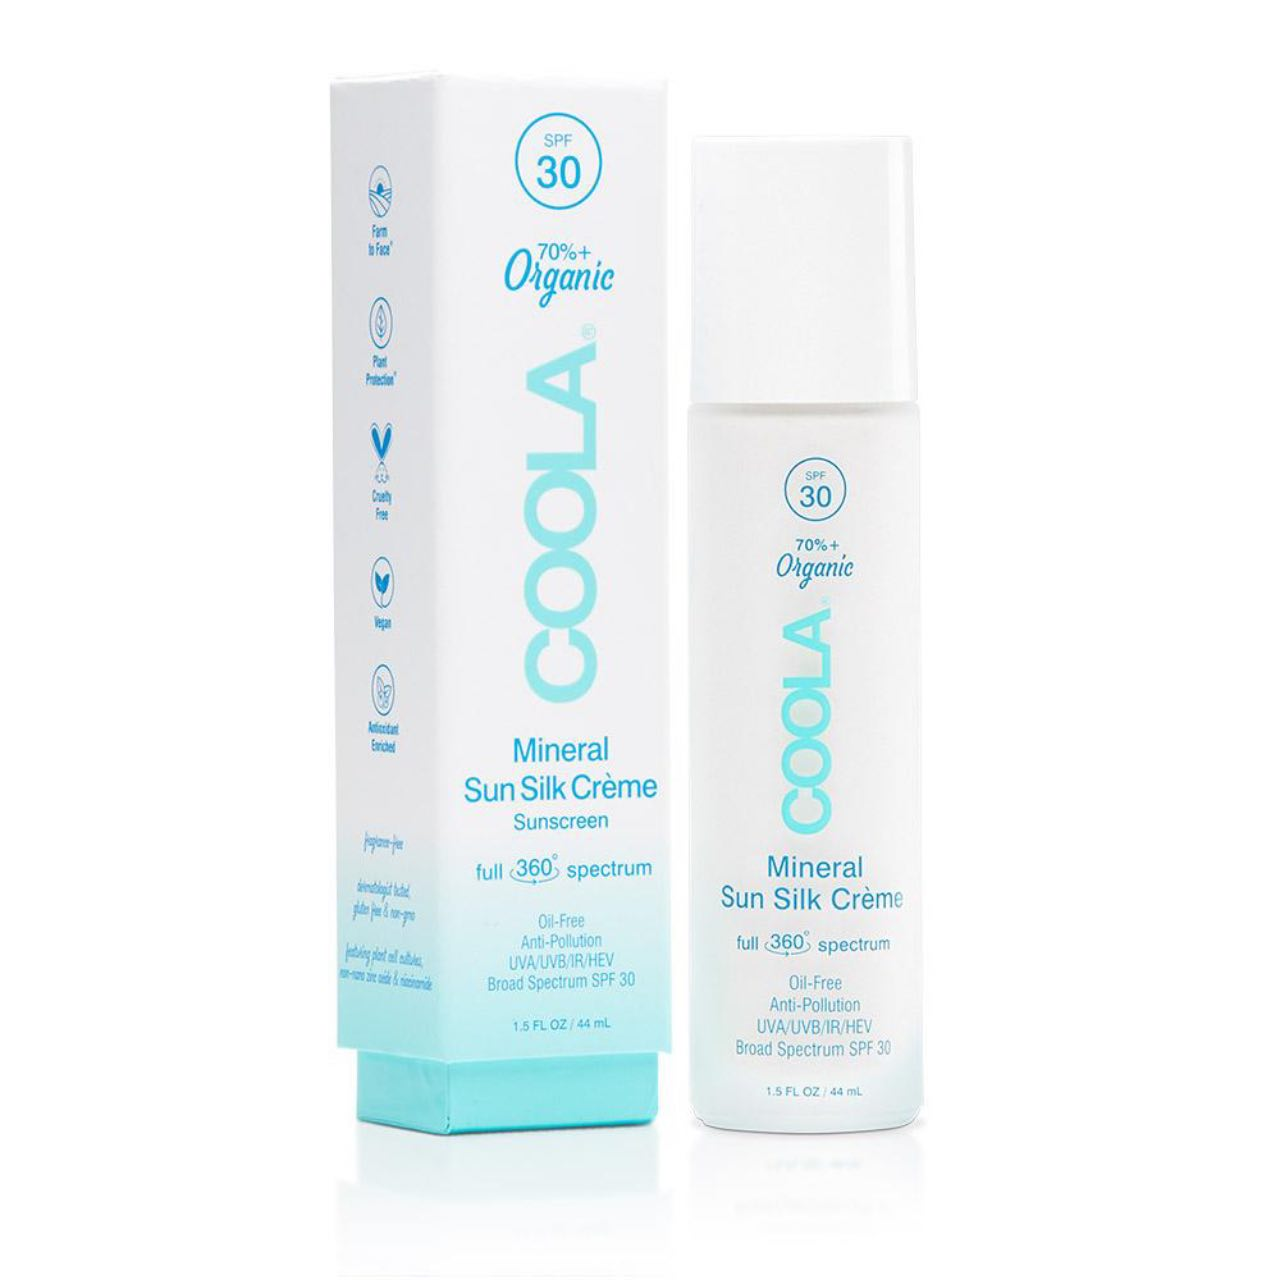 COOLA SPF 30 Full Spectrum 360° Mineral Sun Silk Crème Organic Sunscreen